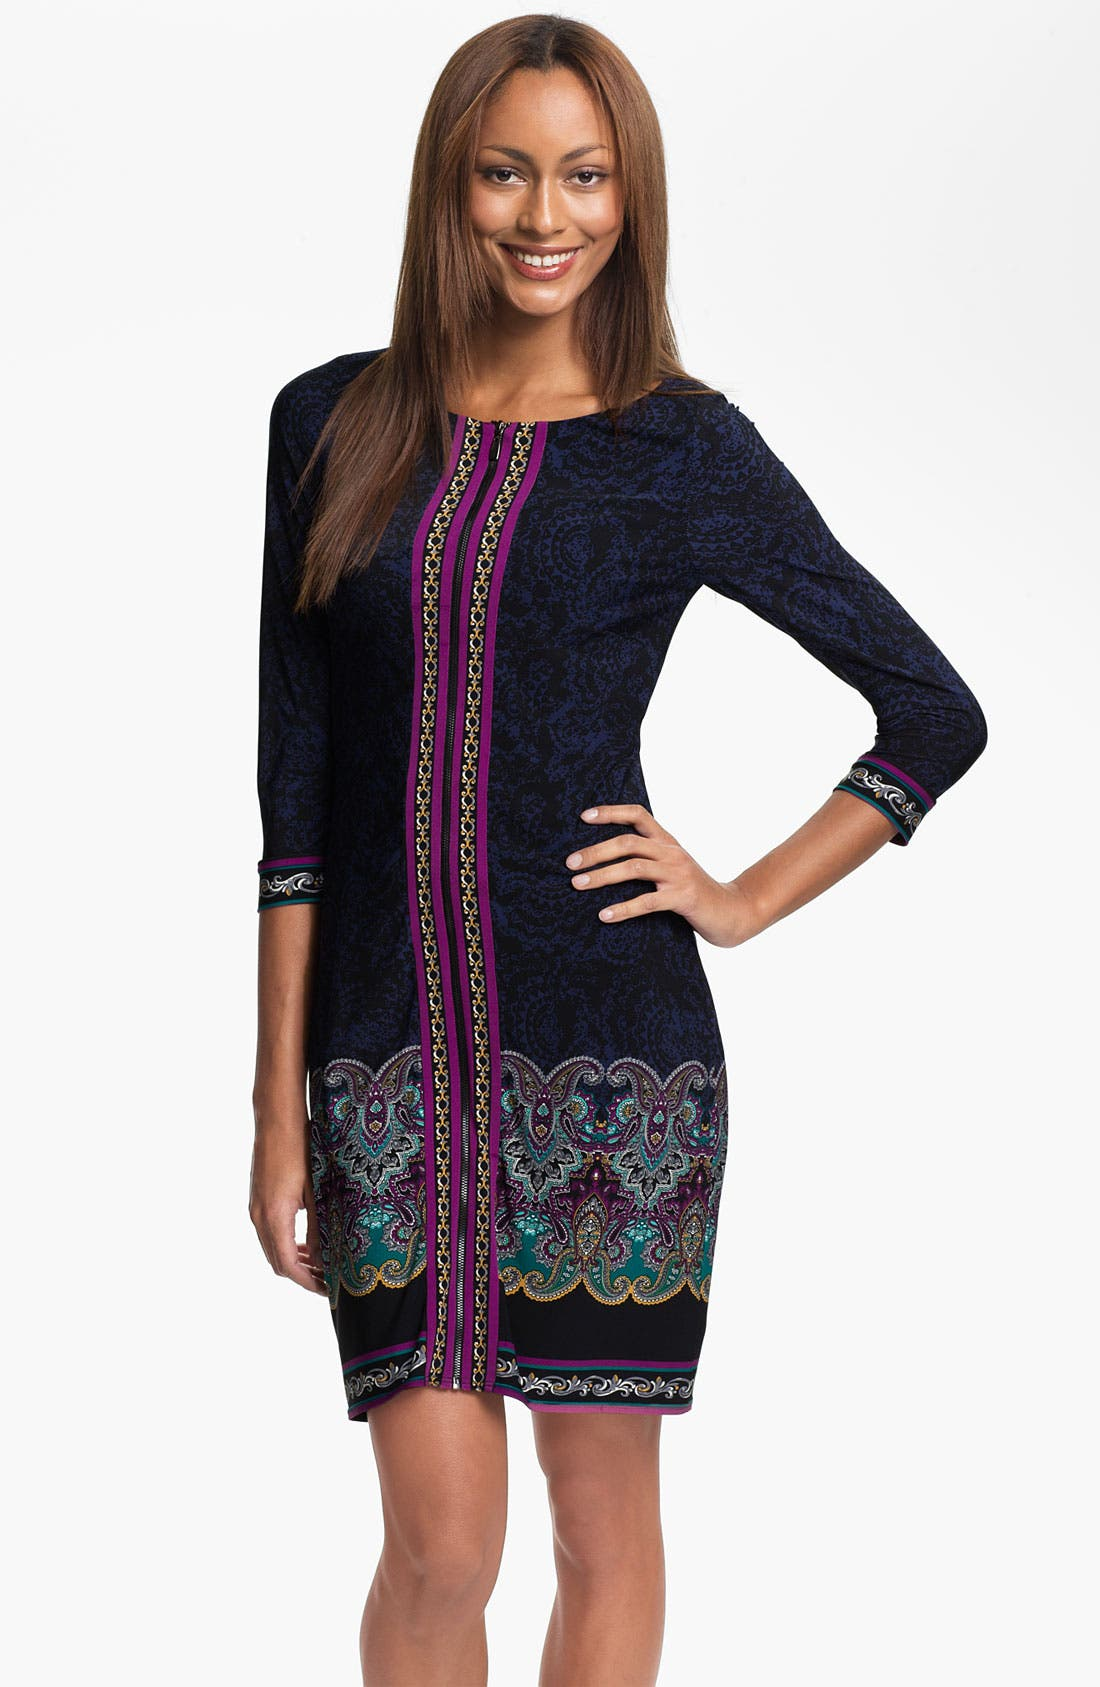 Alternate Image 1 Selected - Laundry by Shelli Segal Zip Front Paisley Print Jersey Dress